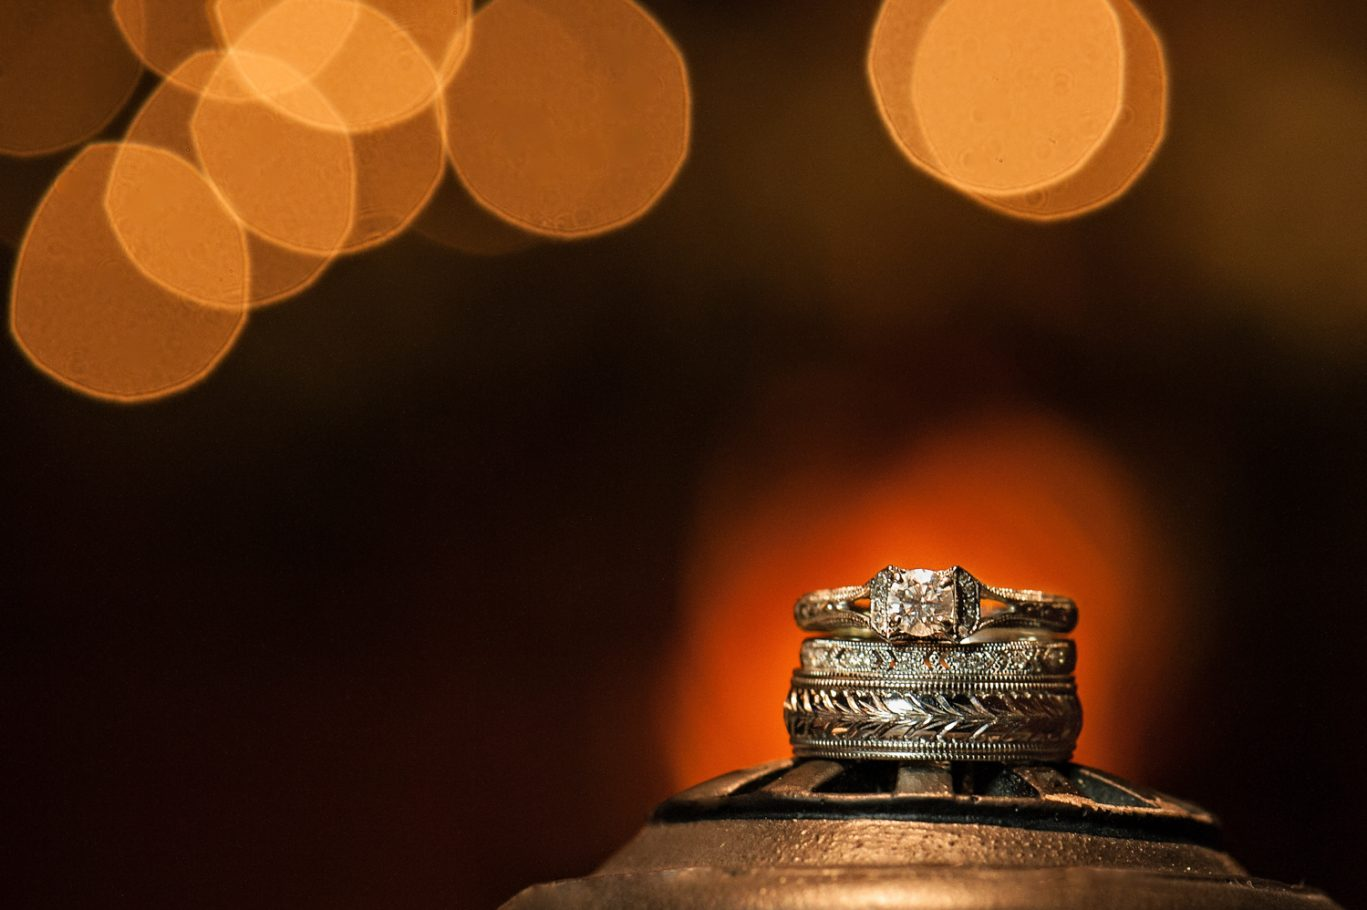 On Old Movie Projector - Unique Wedding Ring Photography